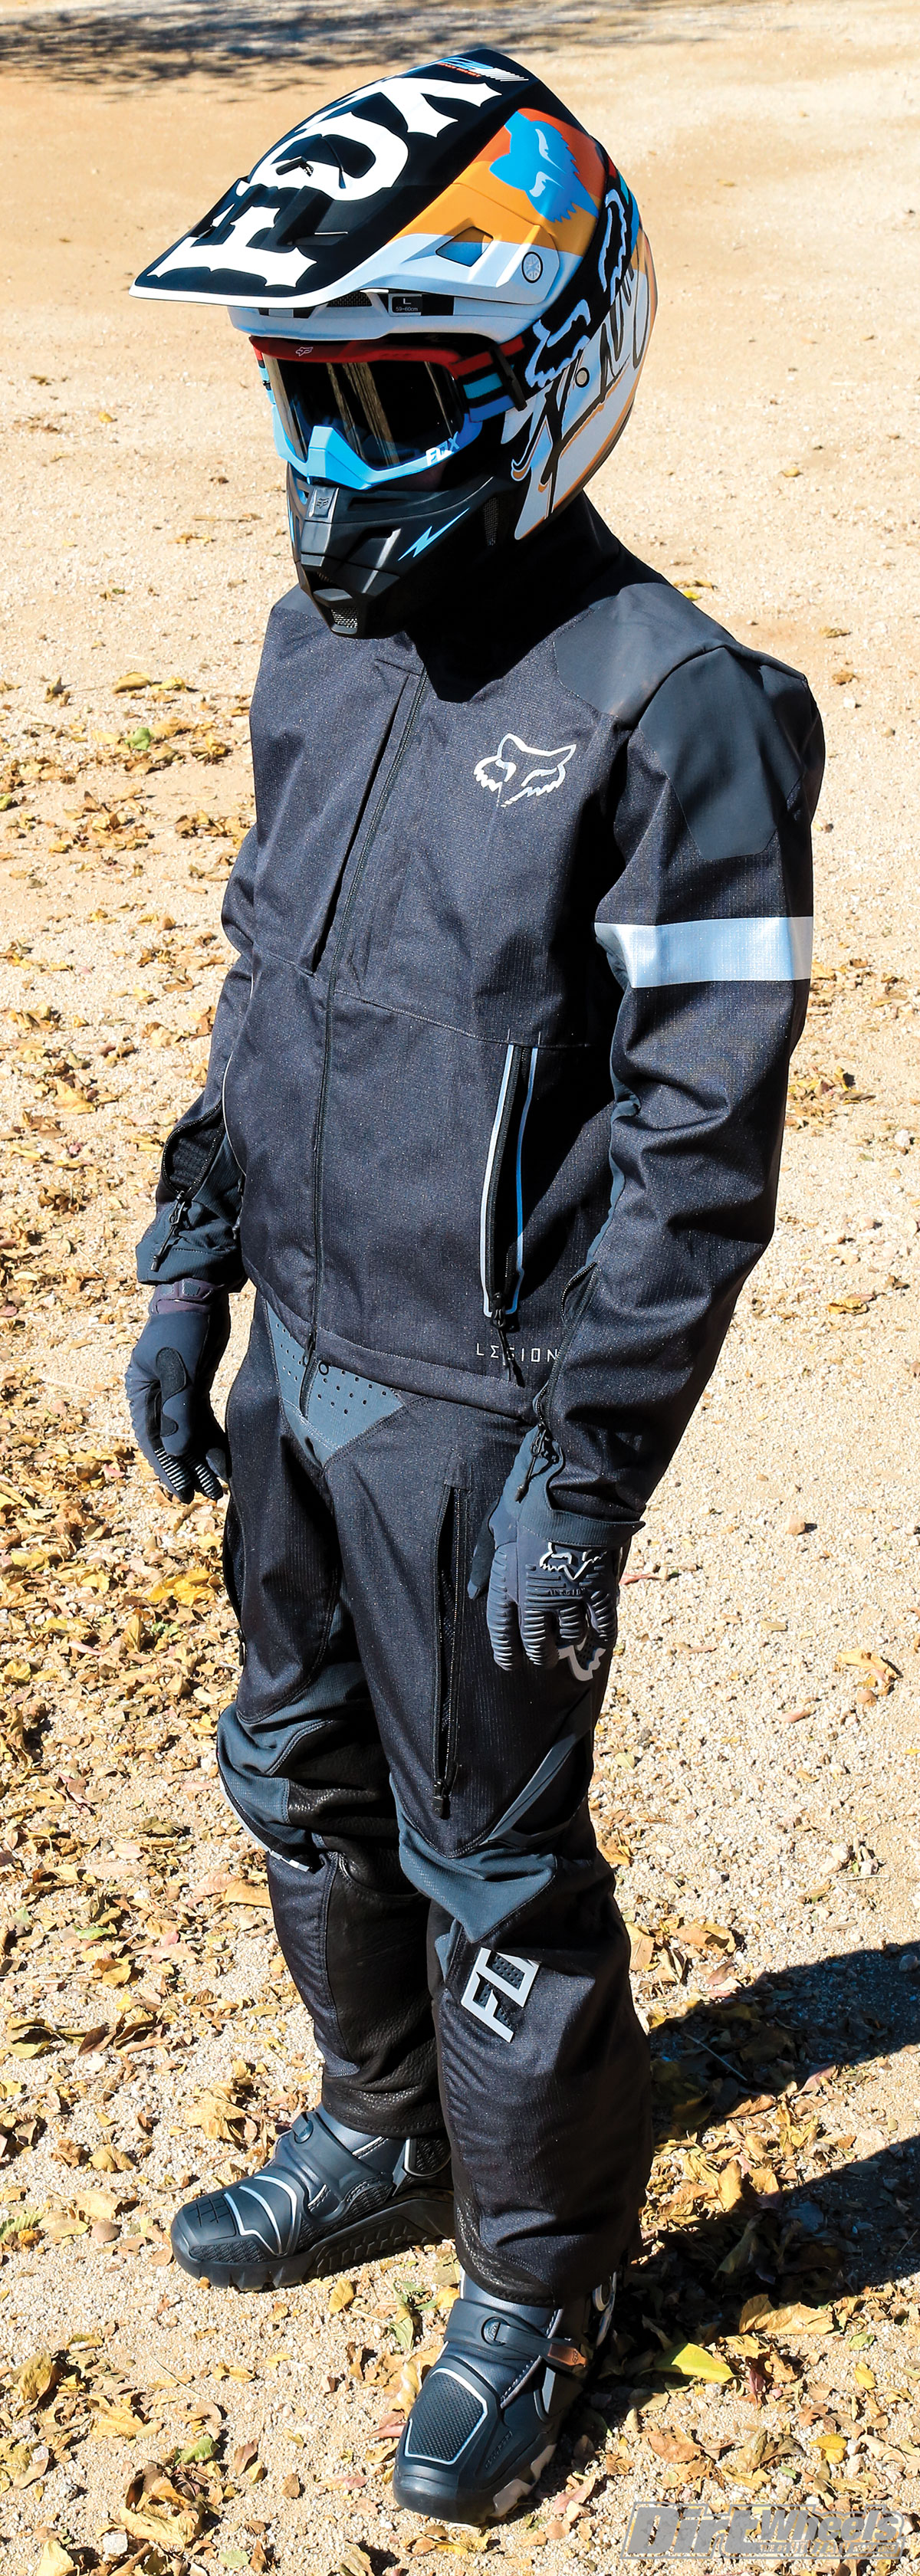 The Legion Offroad gear set has a slim fit to it, yet the gear breathes and stretches very well. If charcoal is your color, this set looks great. You can get it in a navy blue and orange scheme as well.